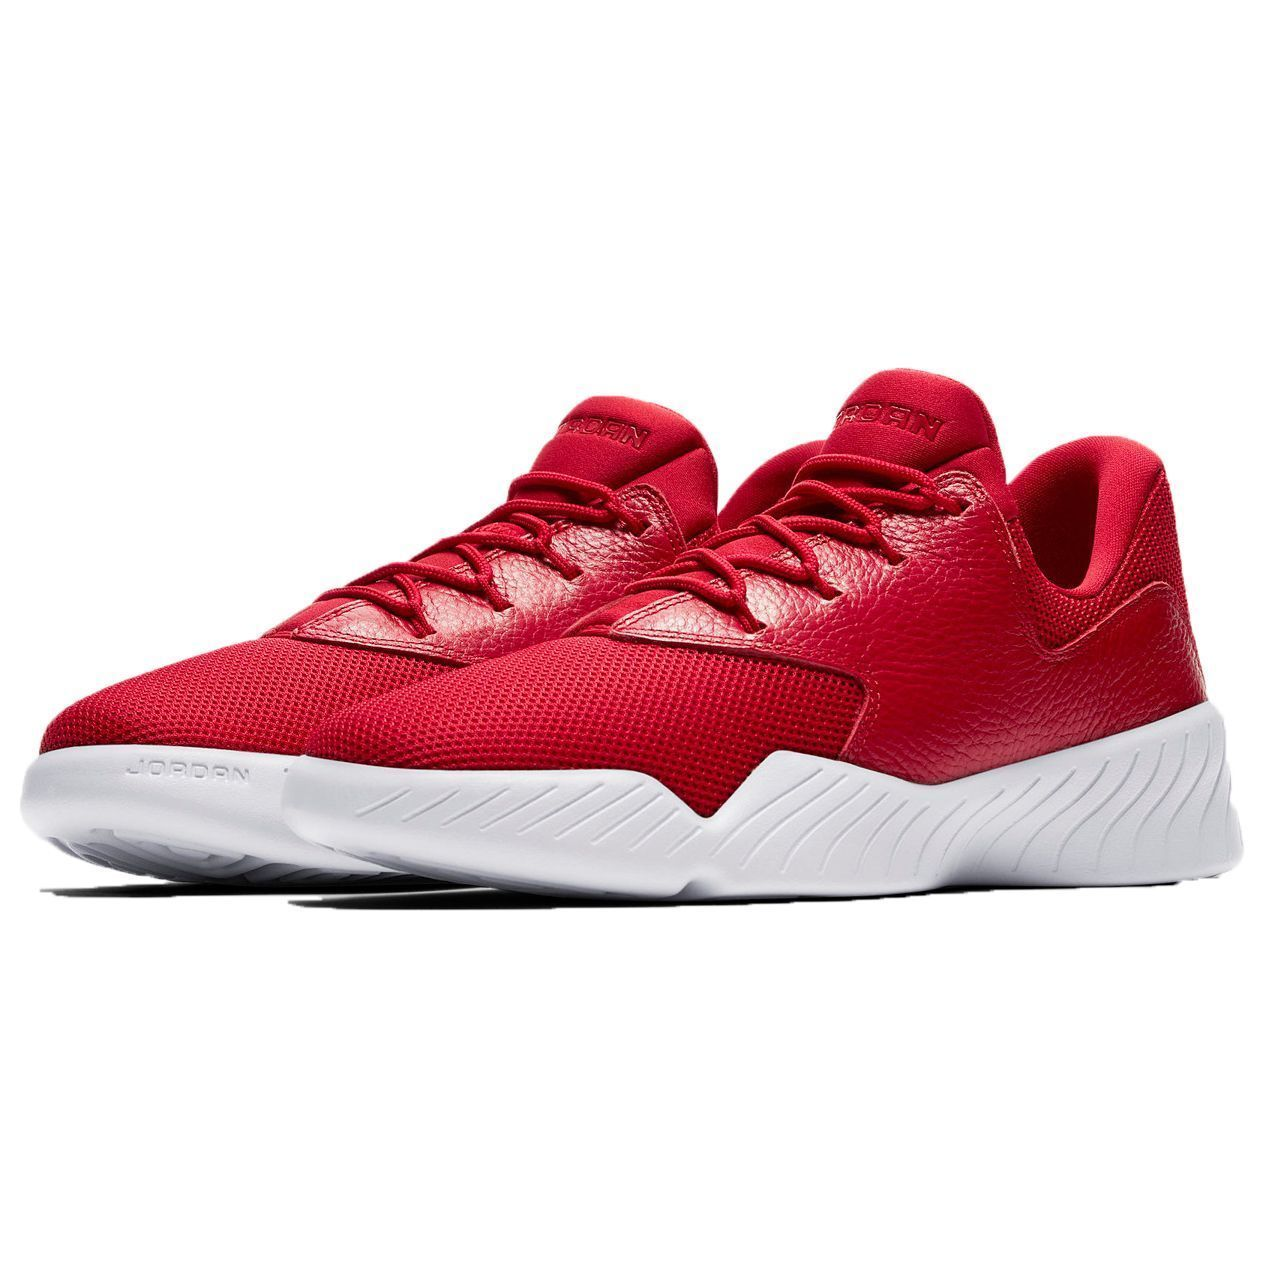 c4f289b6b091c3 Nike Air Jordan J23 Low Gym Red Gym Red-Pure and 27 similar items